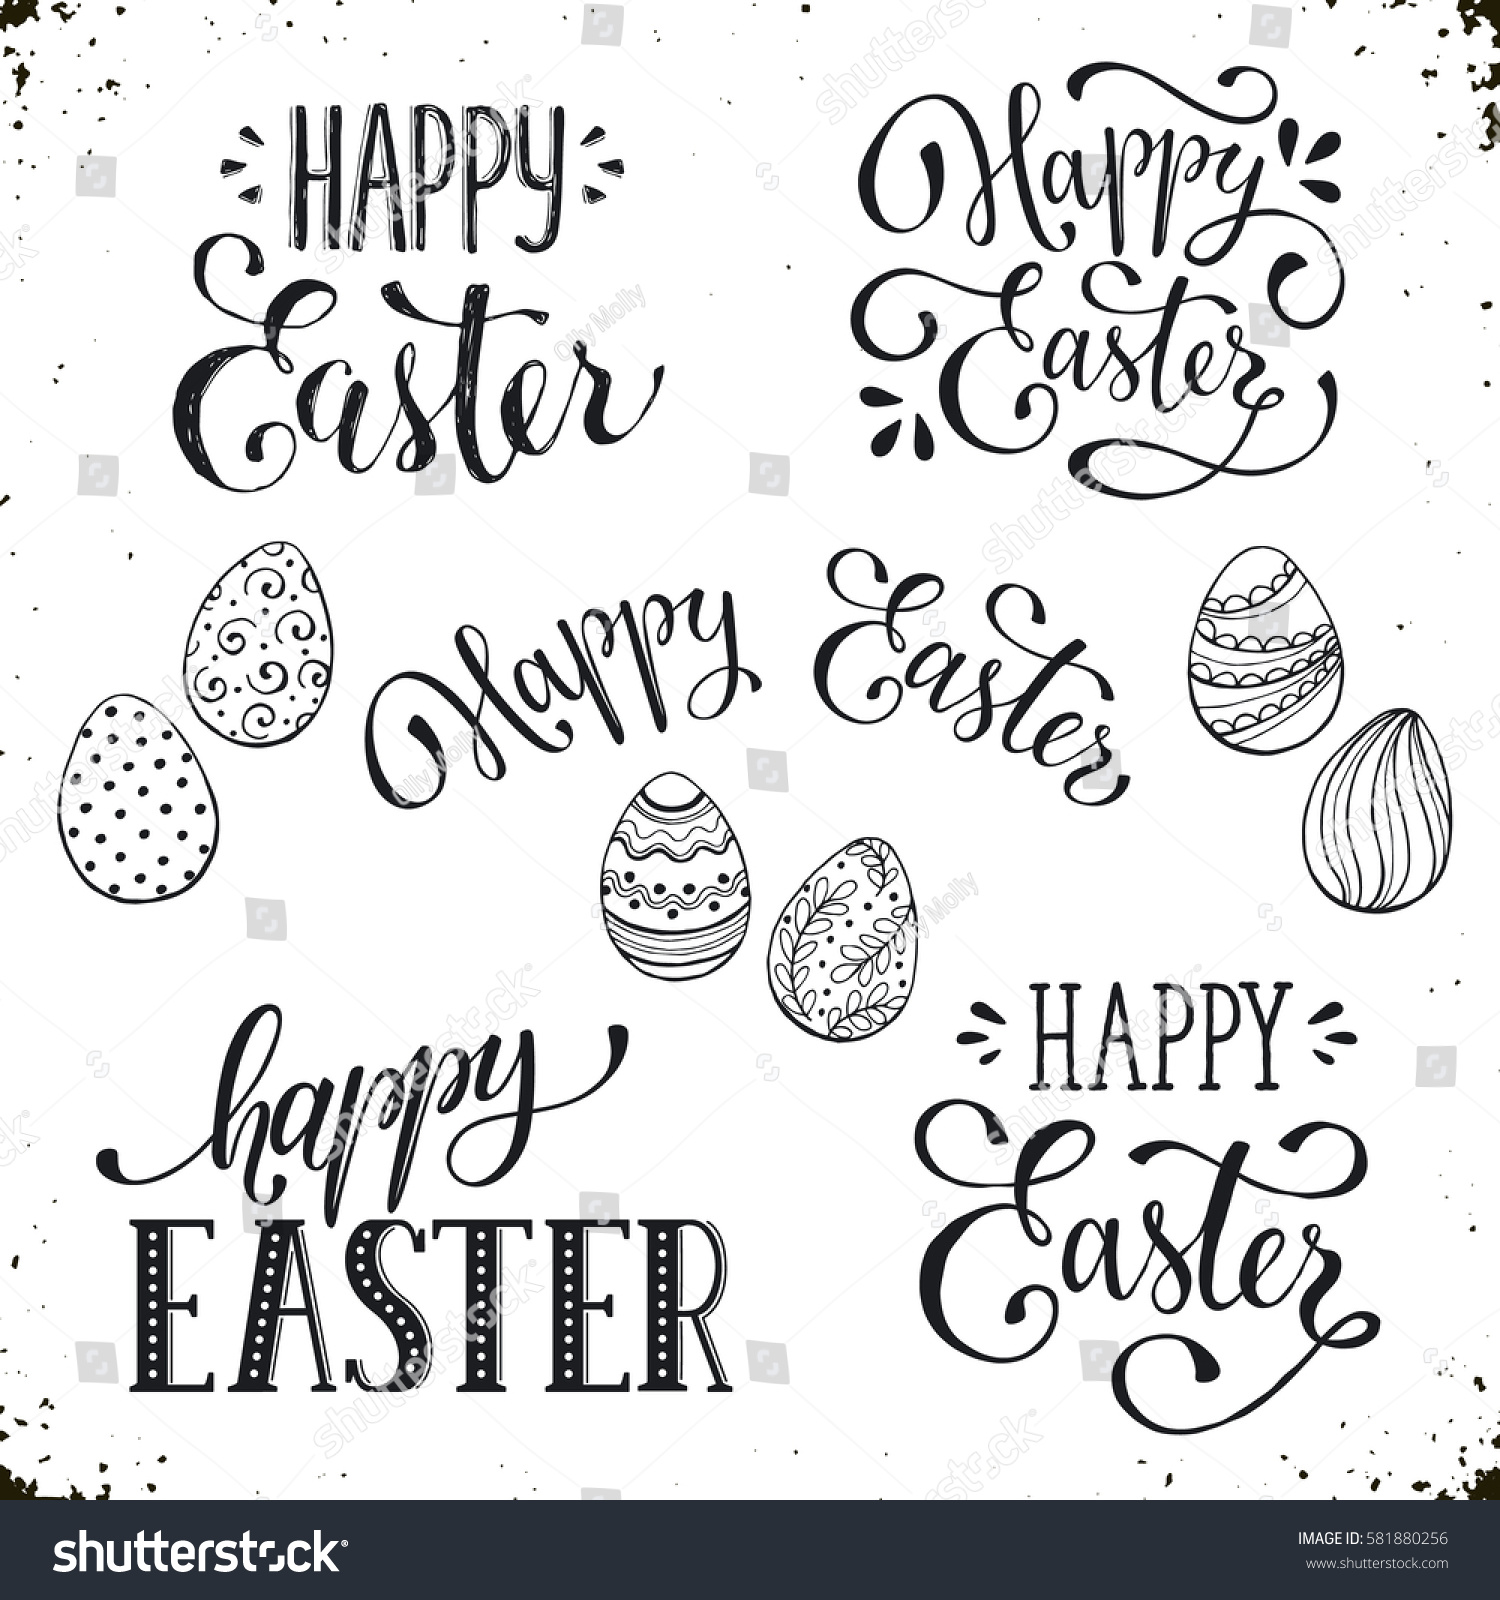 Hand written easter phrases greeting card stock illustration hand written easter phrases greeting card text templates with easter eggs isolated on white background m4hsunfo